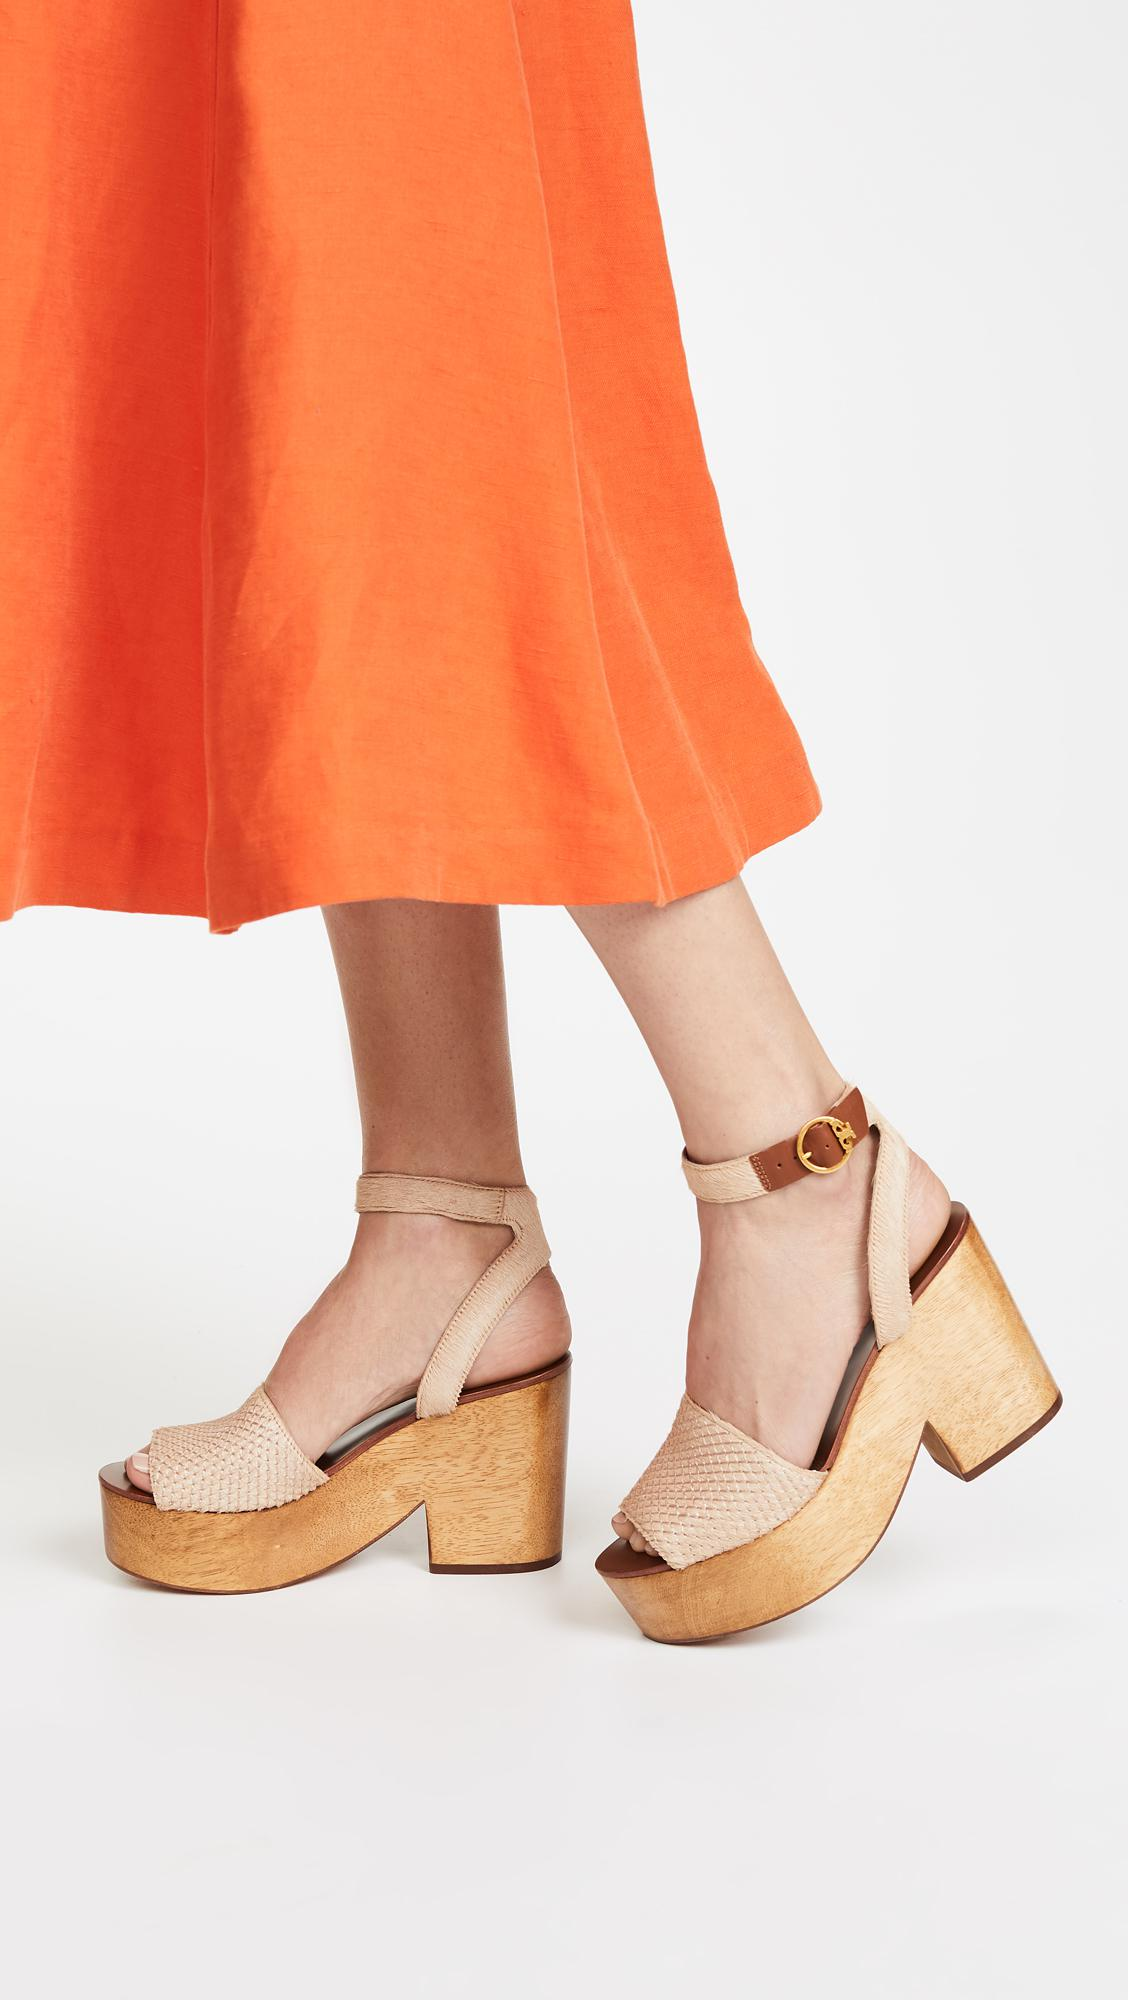 Tory Burch Camilla leather sandals sale cheap price buy online with paypal nVvaQgnYQ